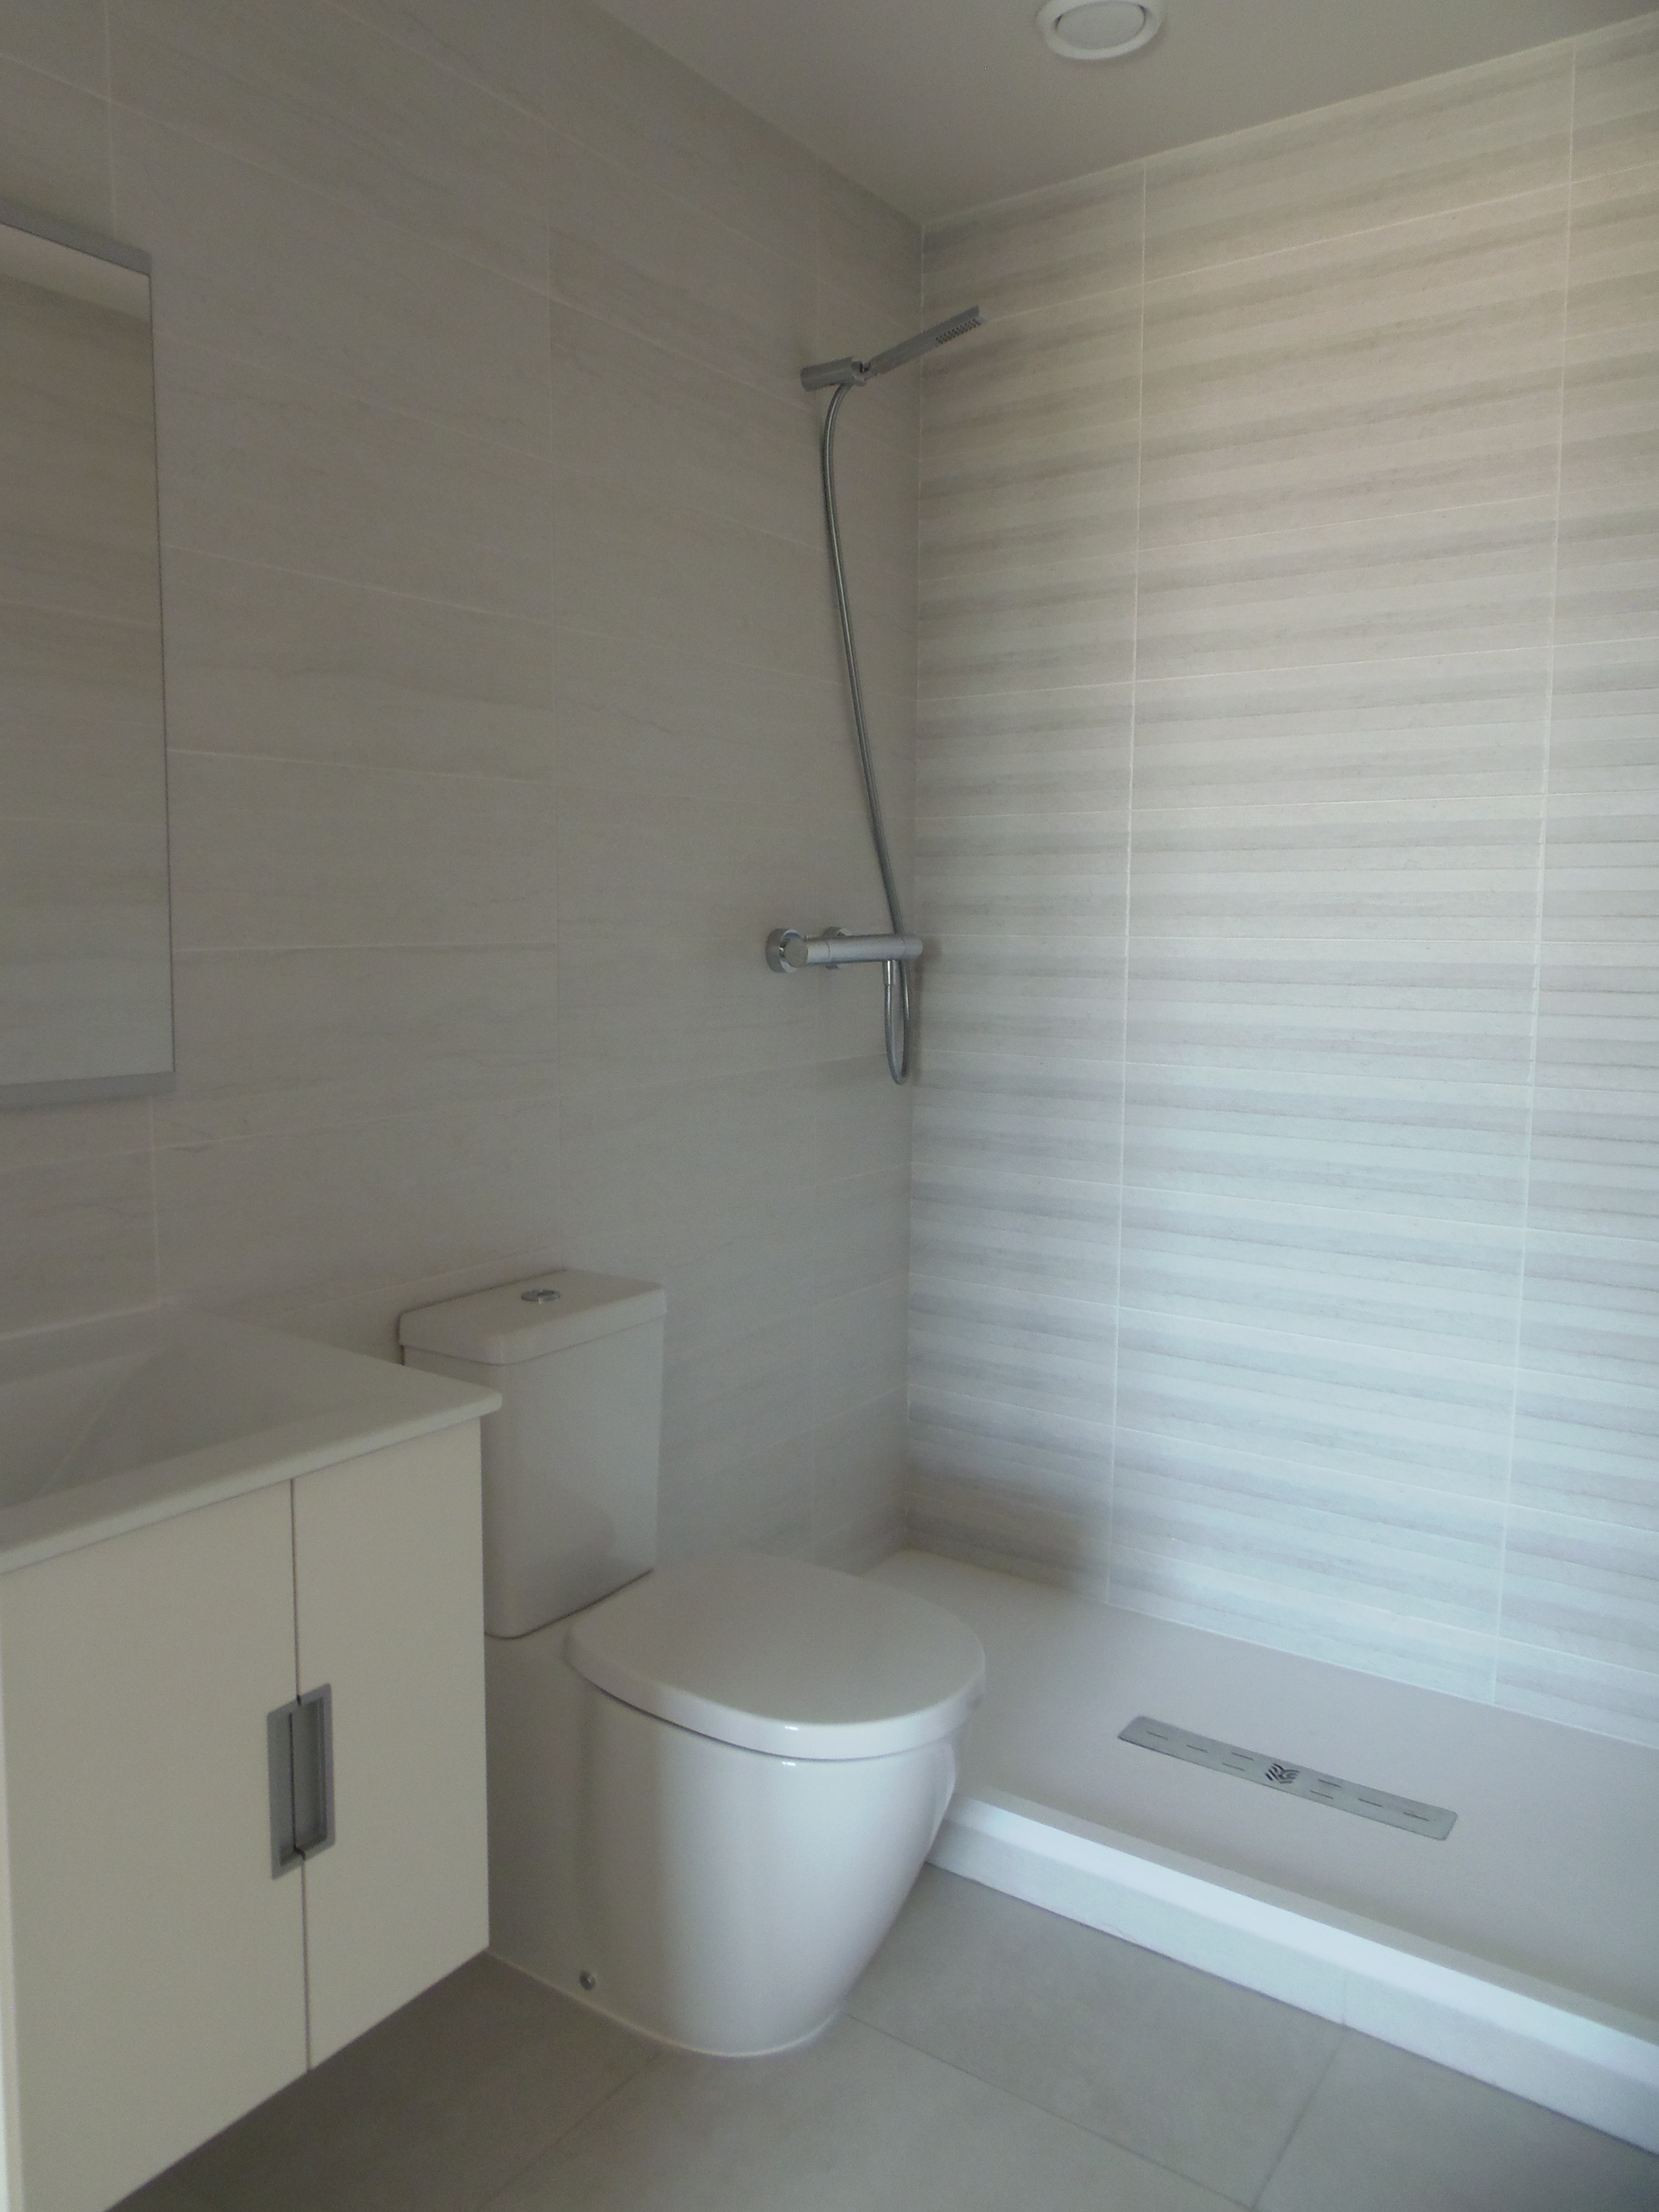 3 bedroom apartment For Sale in Mil Palmeras - photograph 20